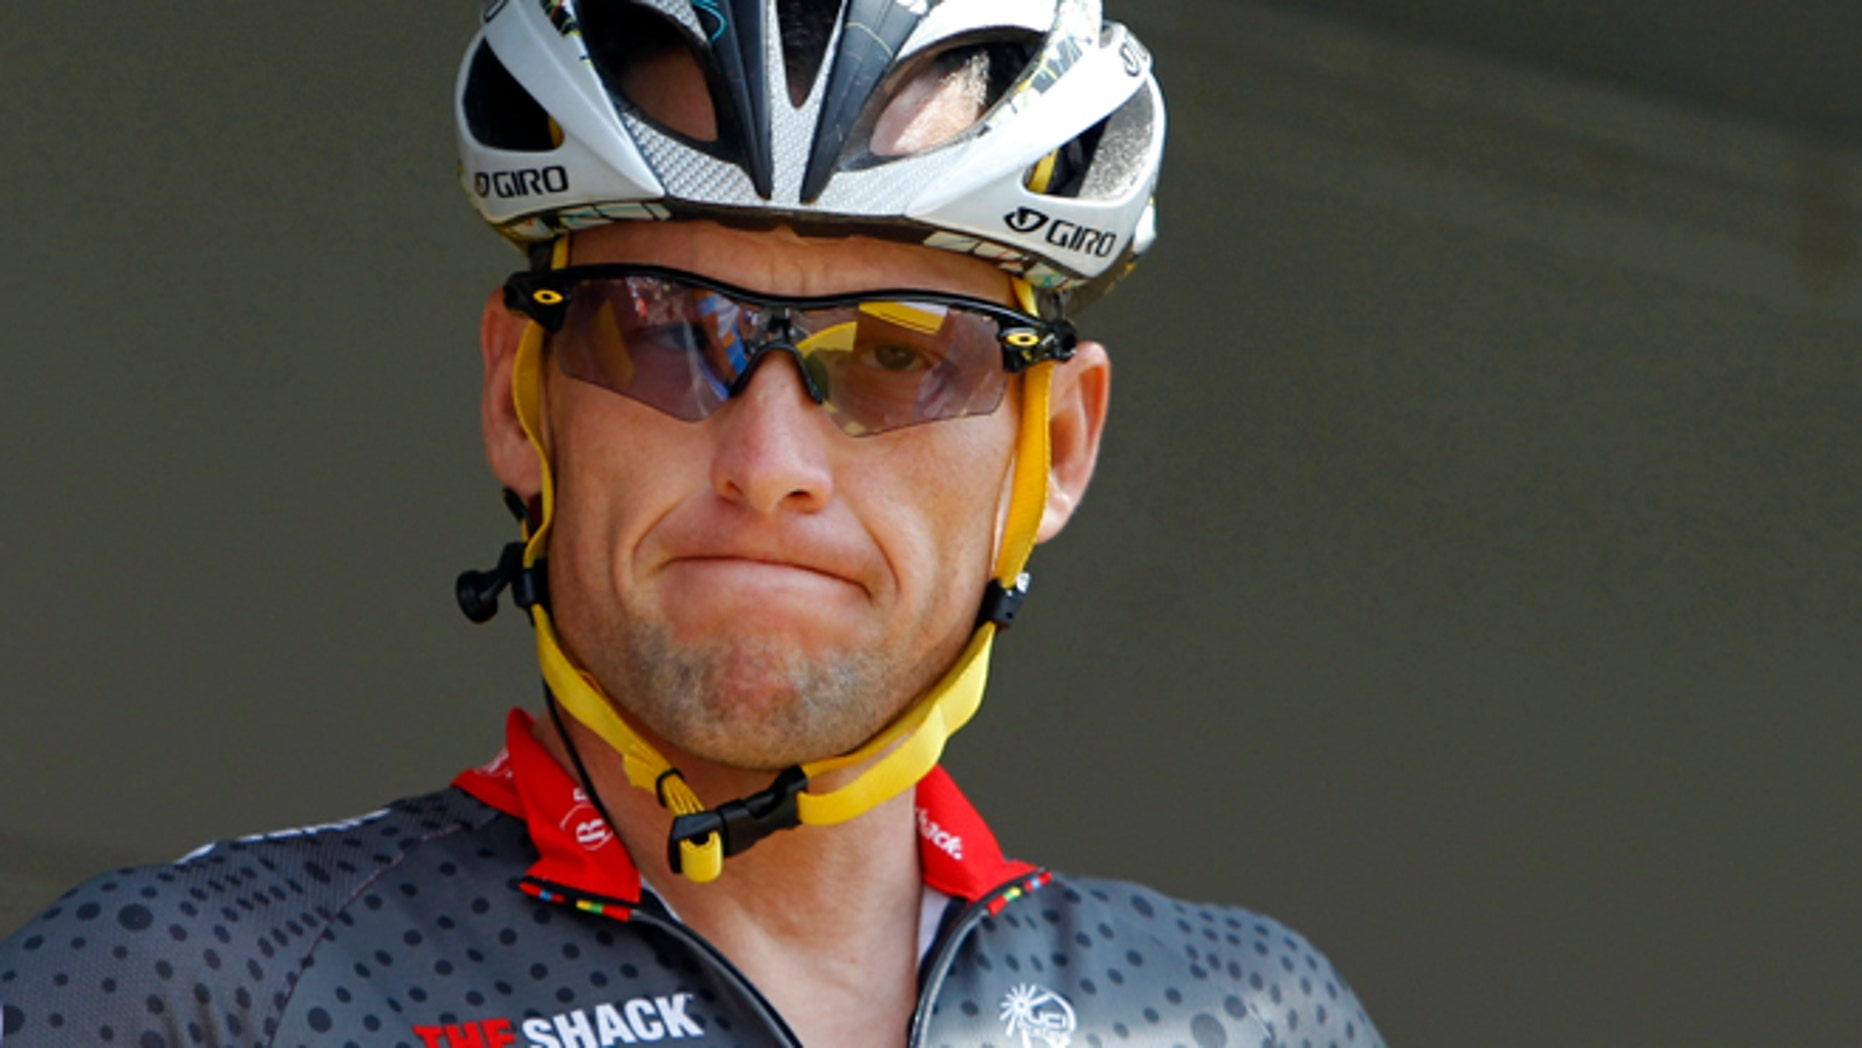 July 6, 2010: Lance Armstrong grimaces prior to the start of the third stage of the Tour de France cycling race in Wanze, Belgium.